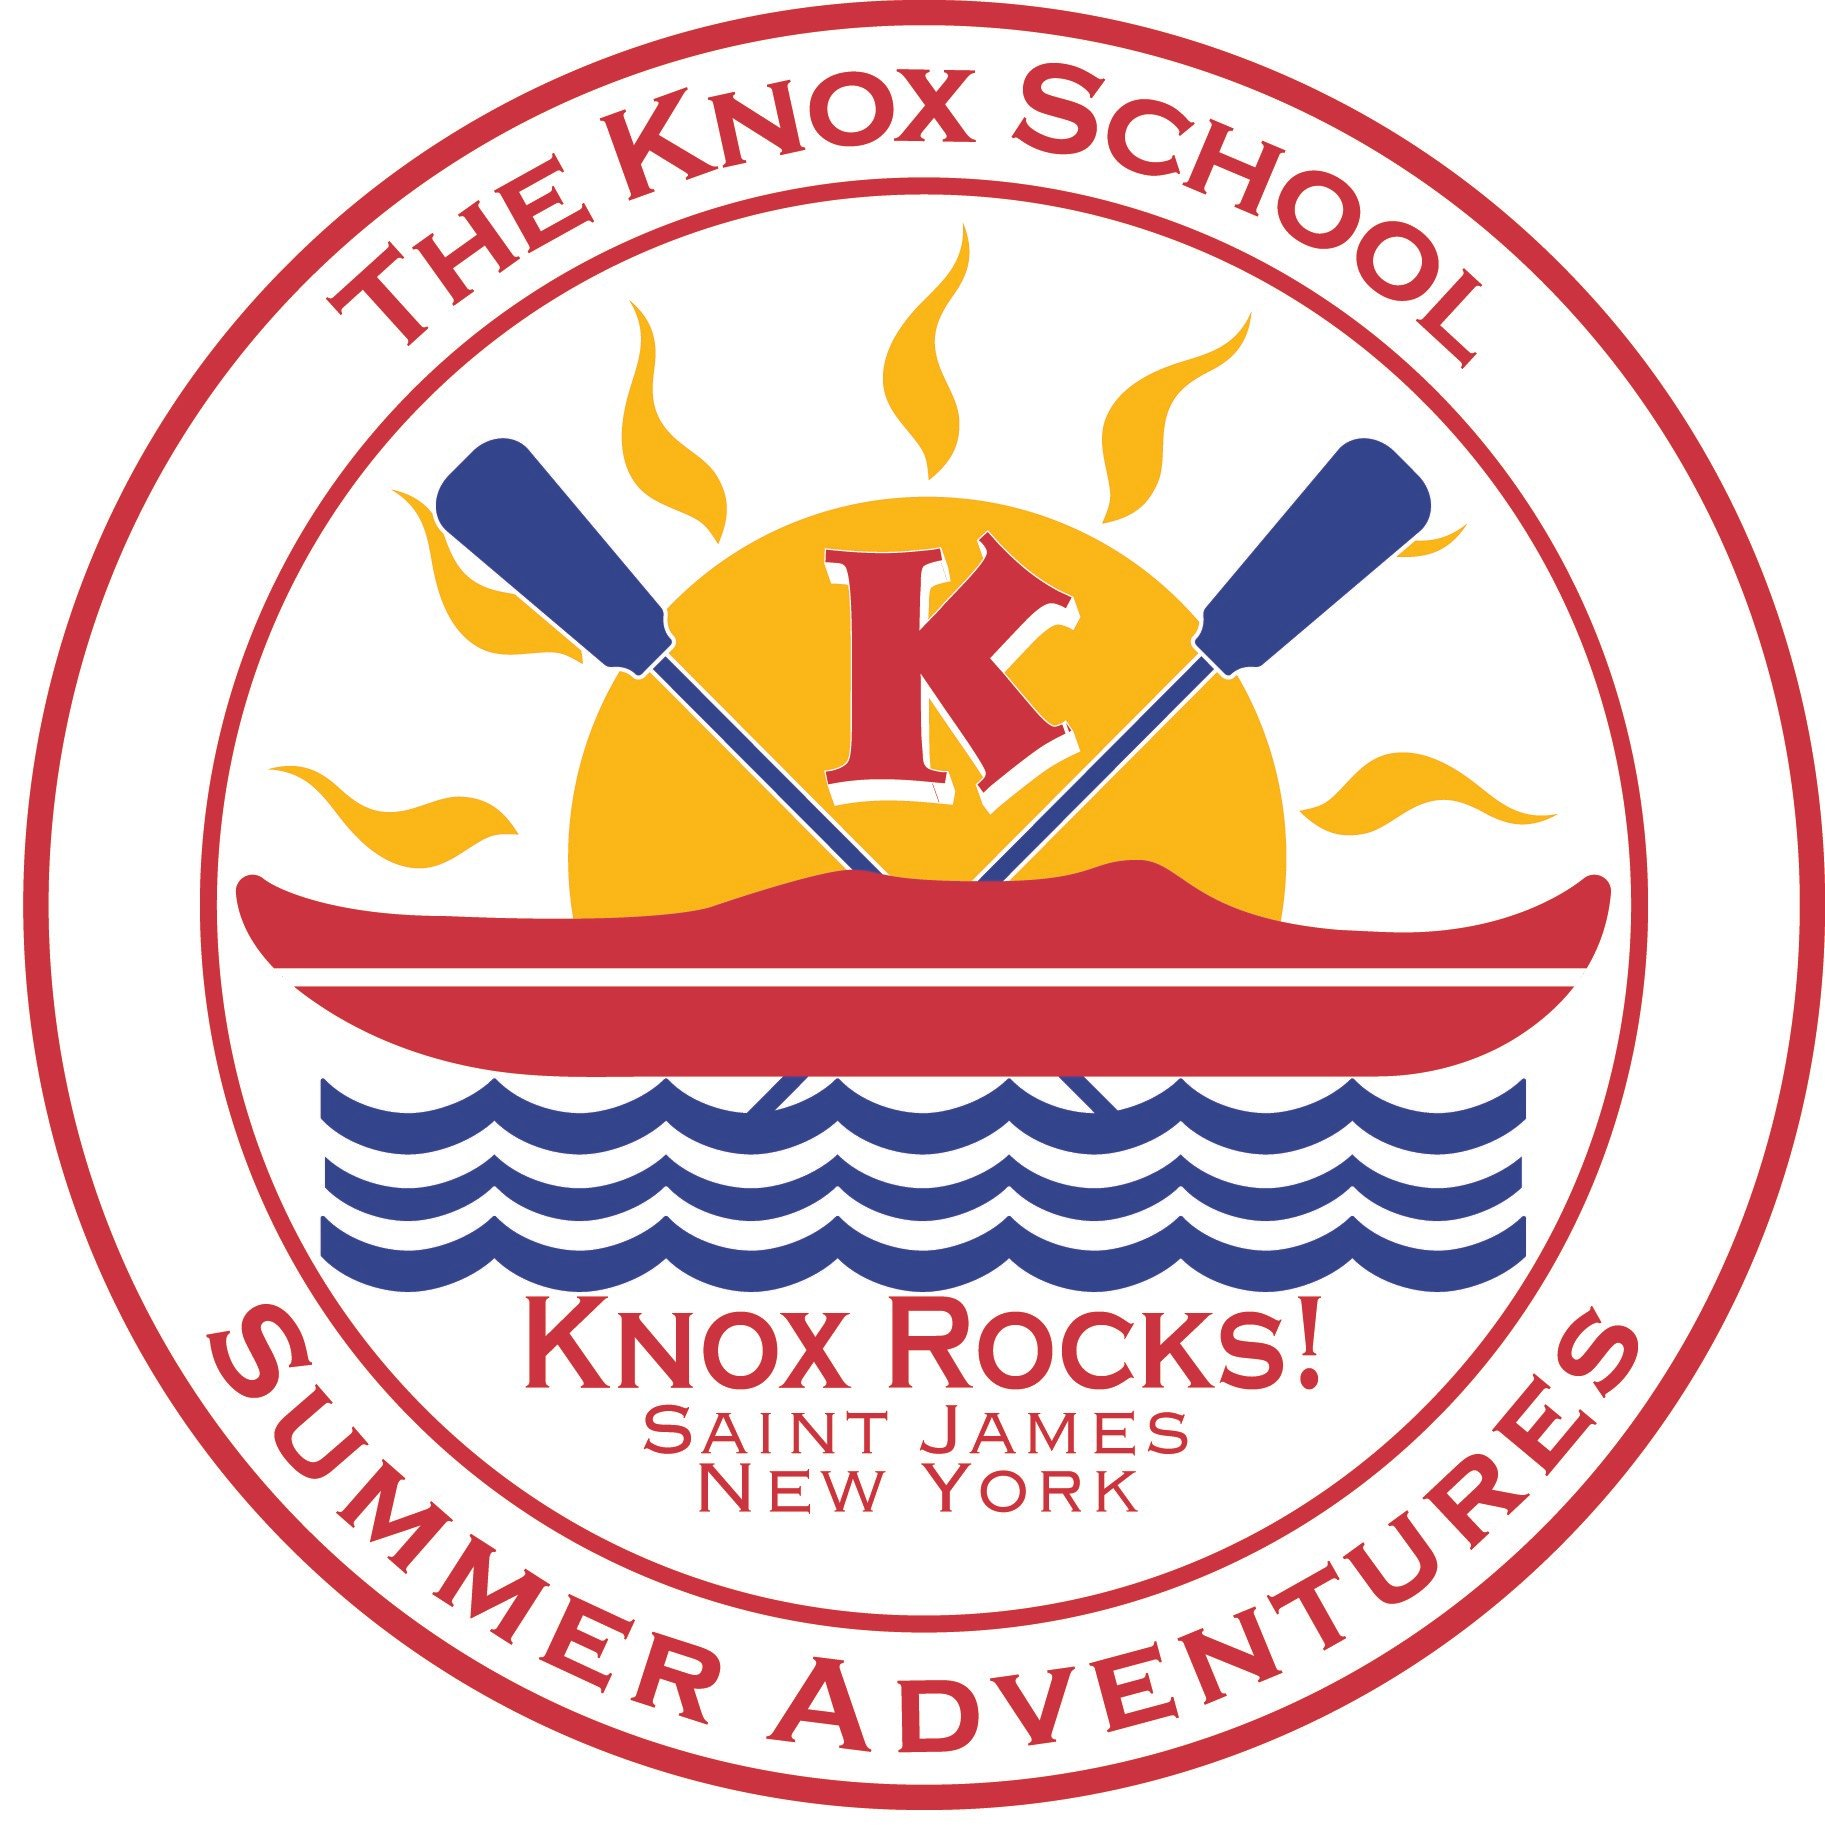 Knox School Summer Adventures